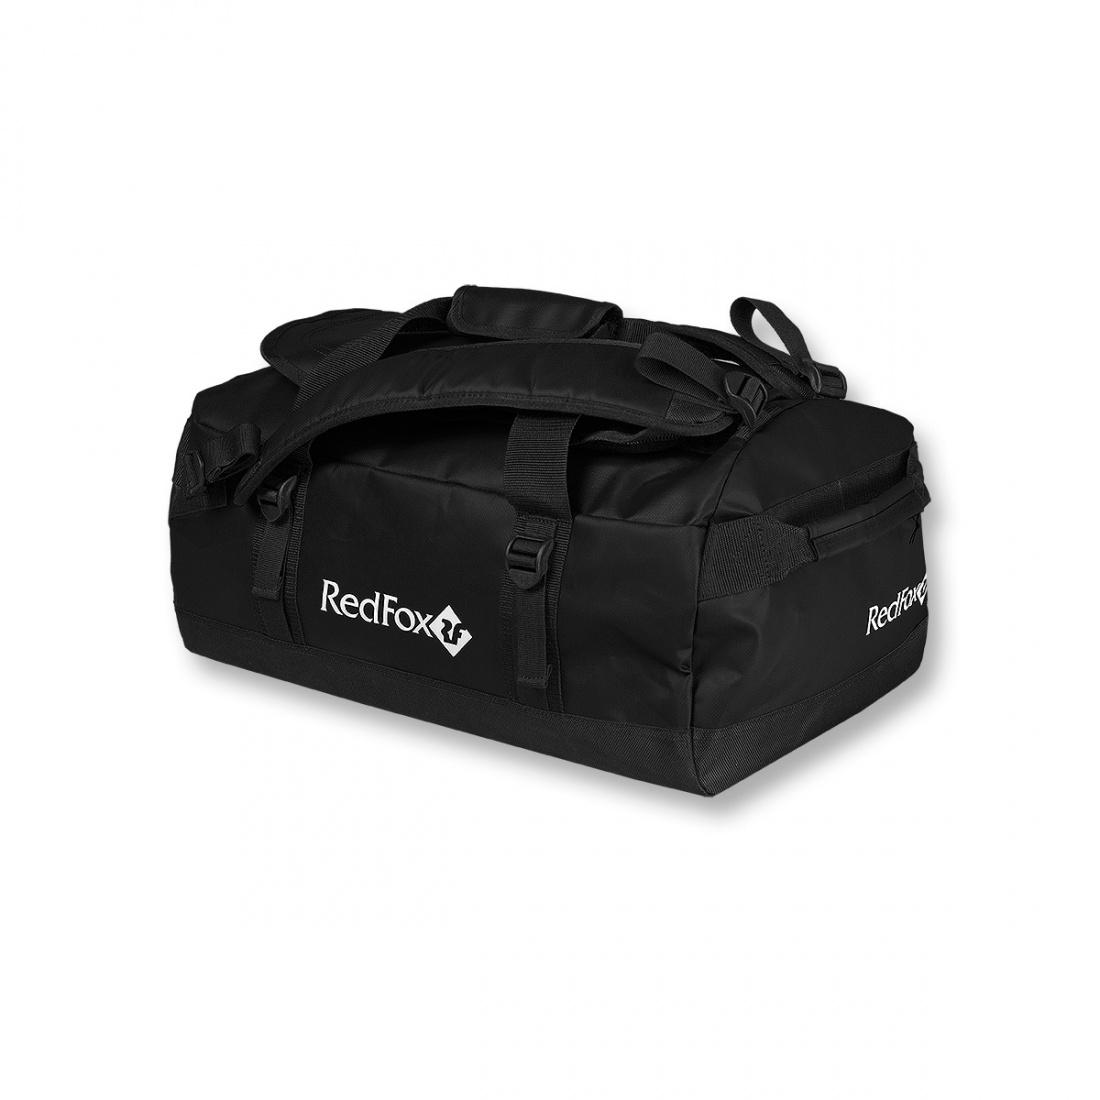 Баул Expedition Duffel Bag 70 от Red Fox